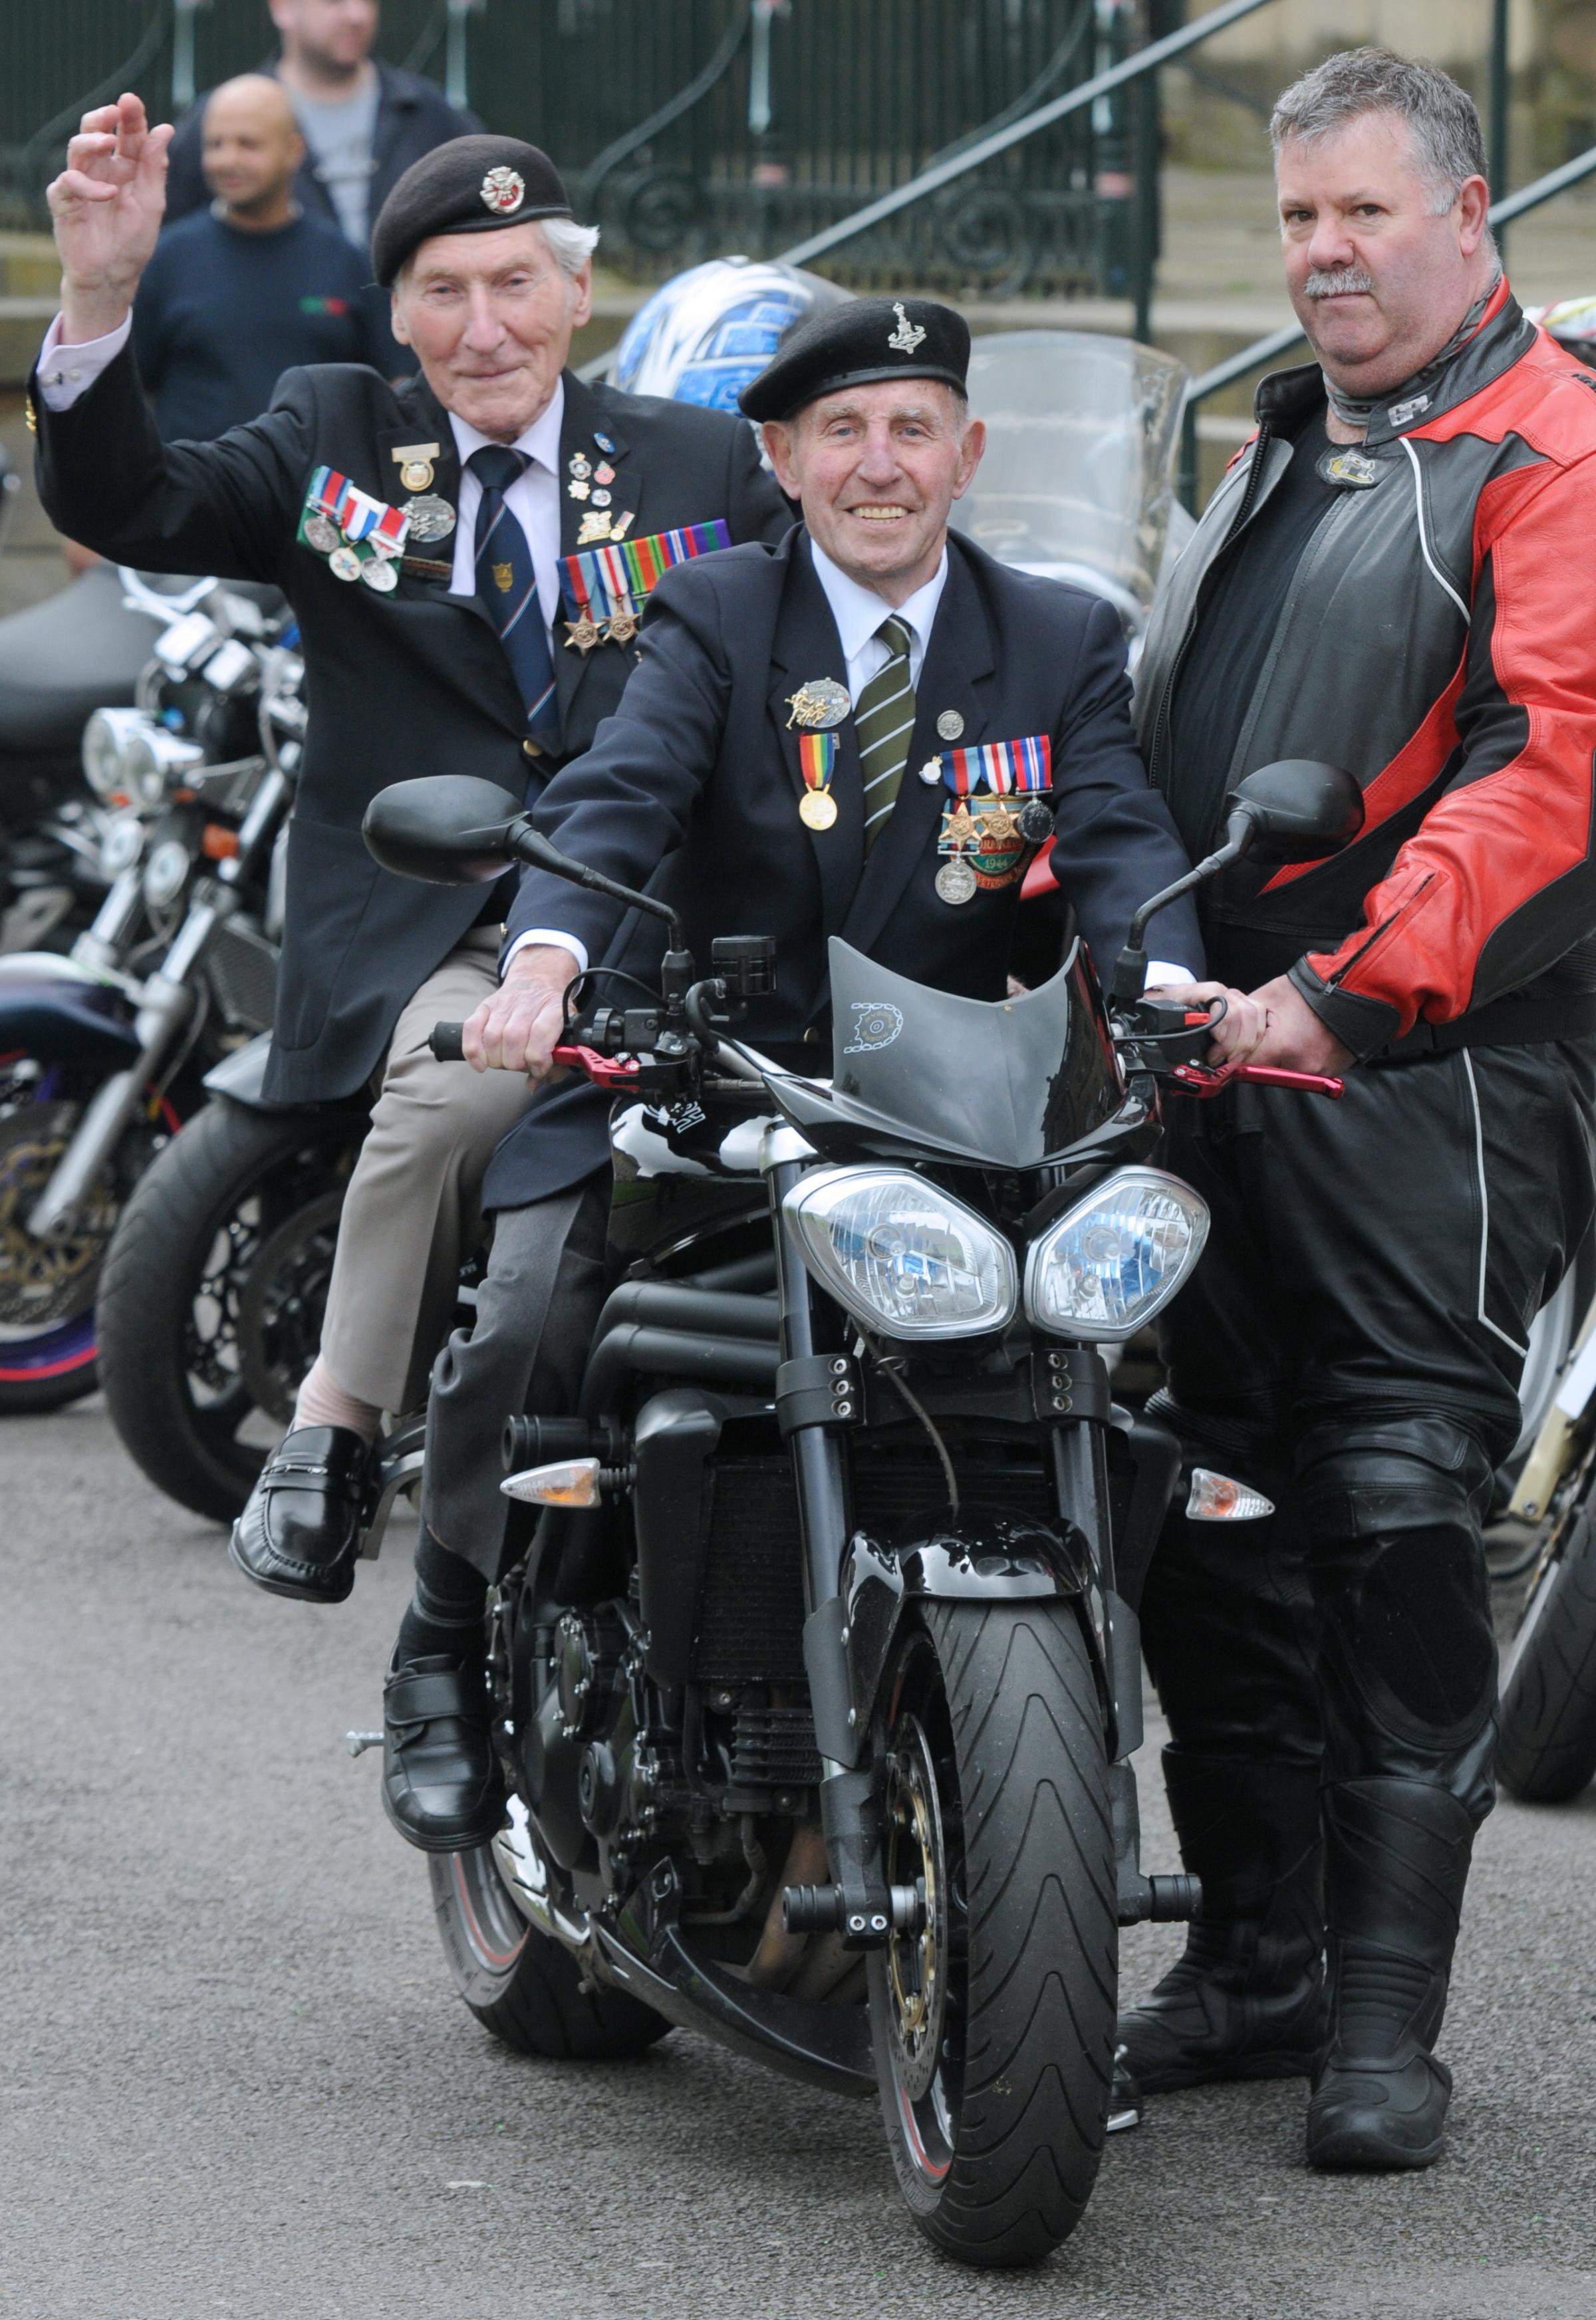 Normandy veterans Ken Smith (left) and Ken Cooke, try out a Triumph motorbike for size at the Eye of York, the start point for the fundraising ride, with bike owner Andy Wood of Ryedale Riders.